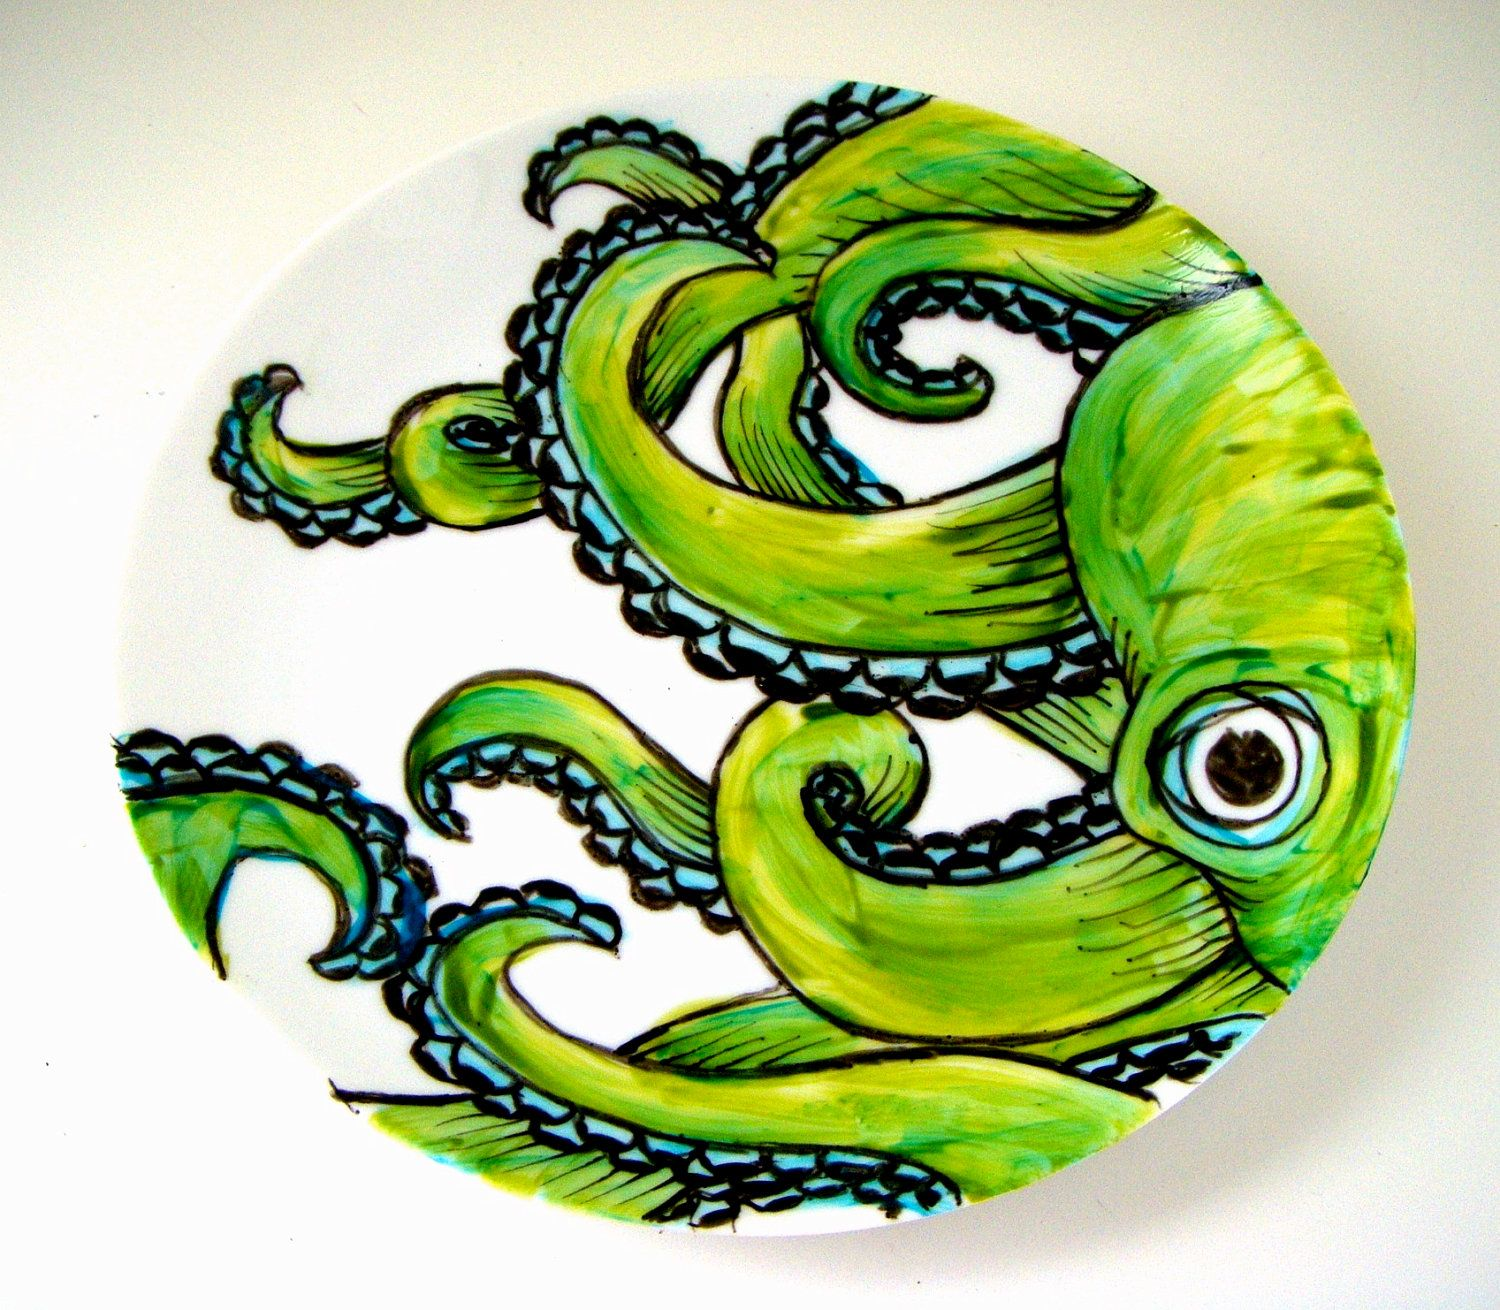 Ceramic Octopus Ceramic Plate Green Octopus Kraken Sea Creature Nautical